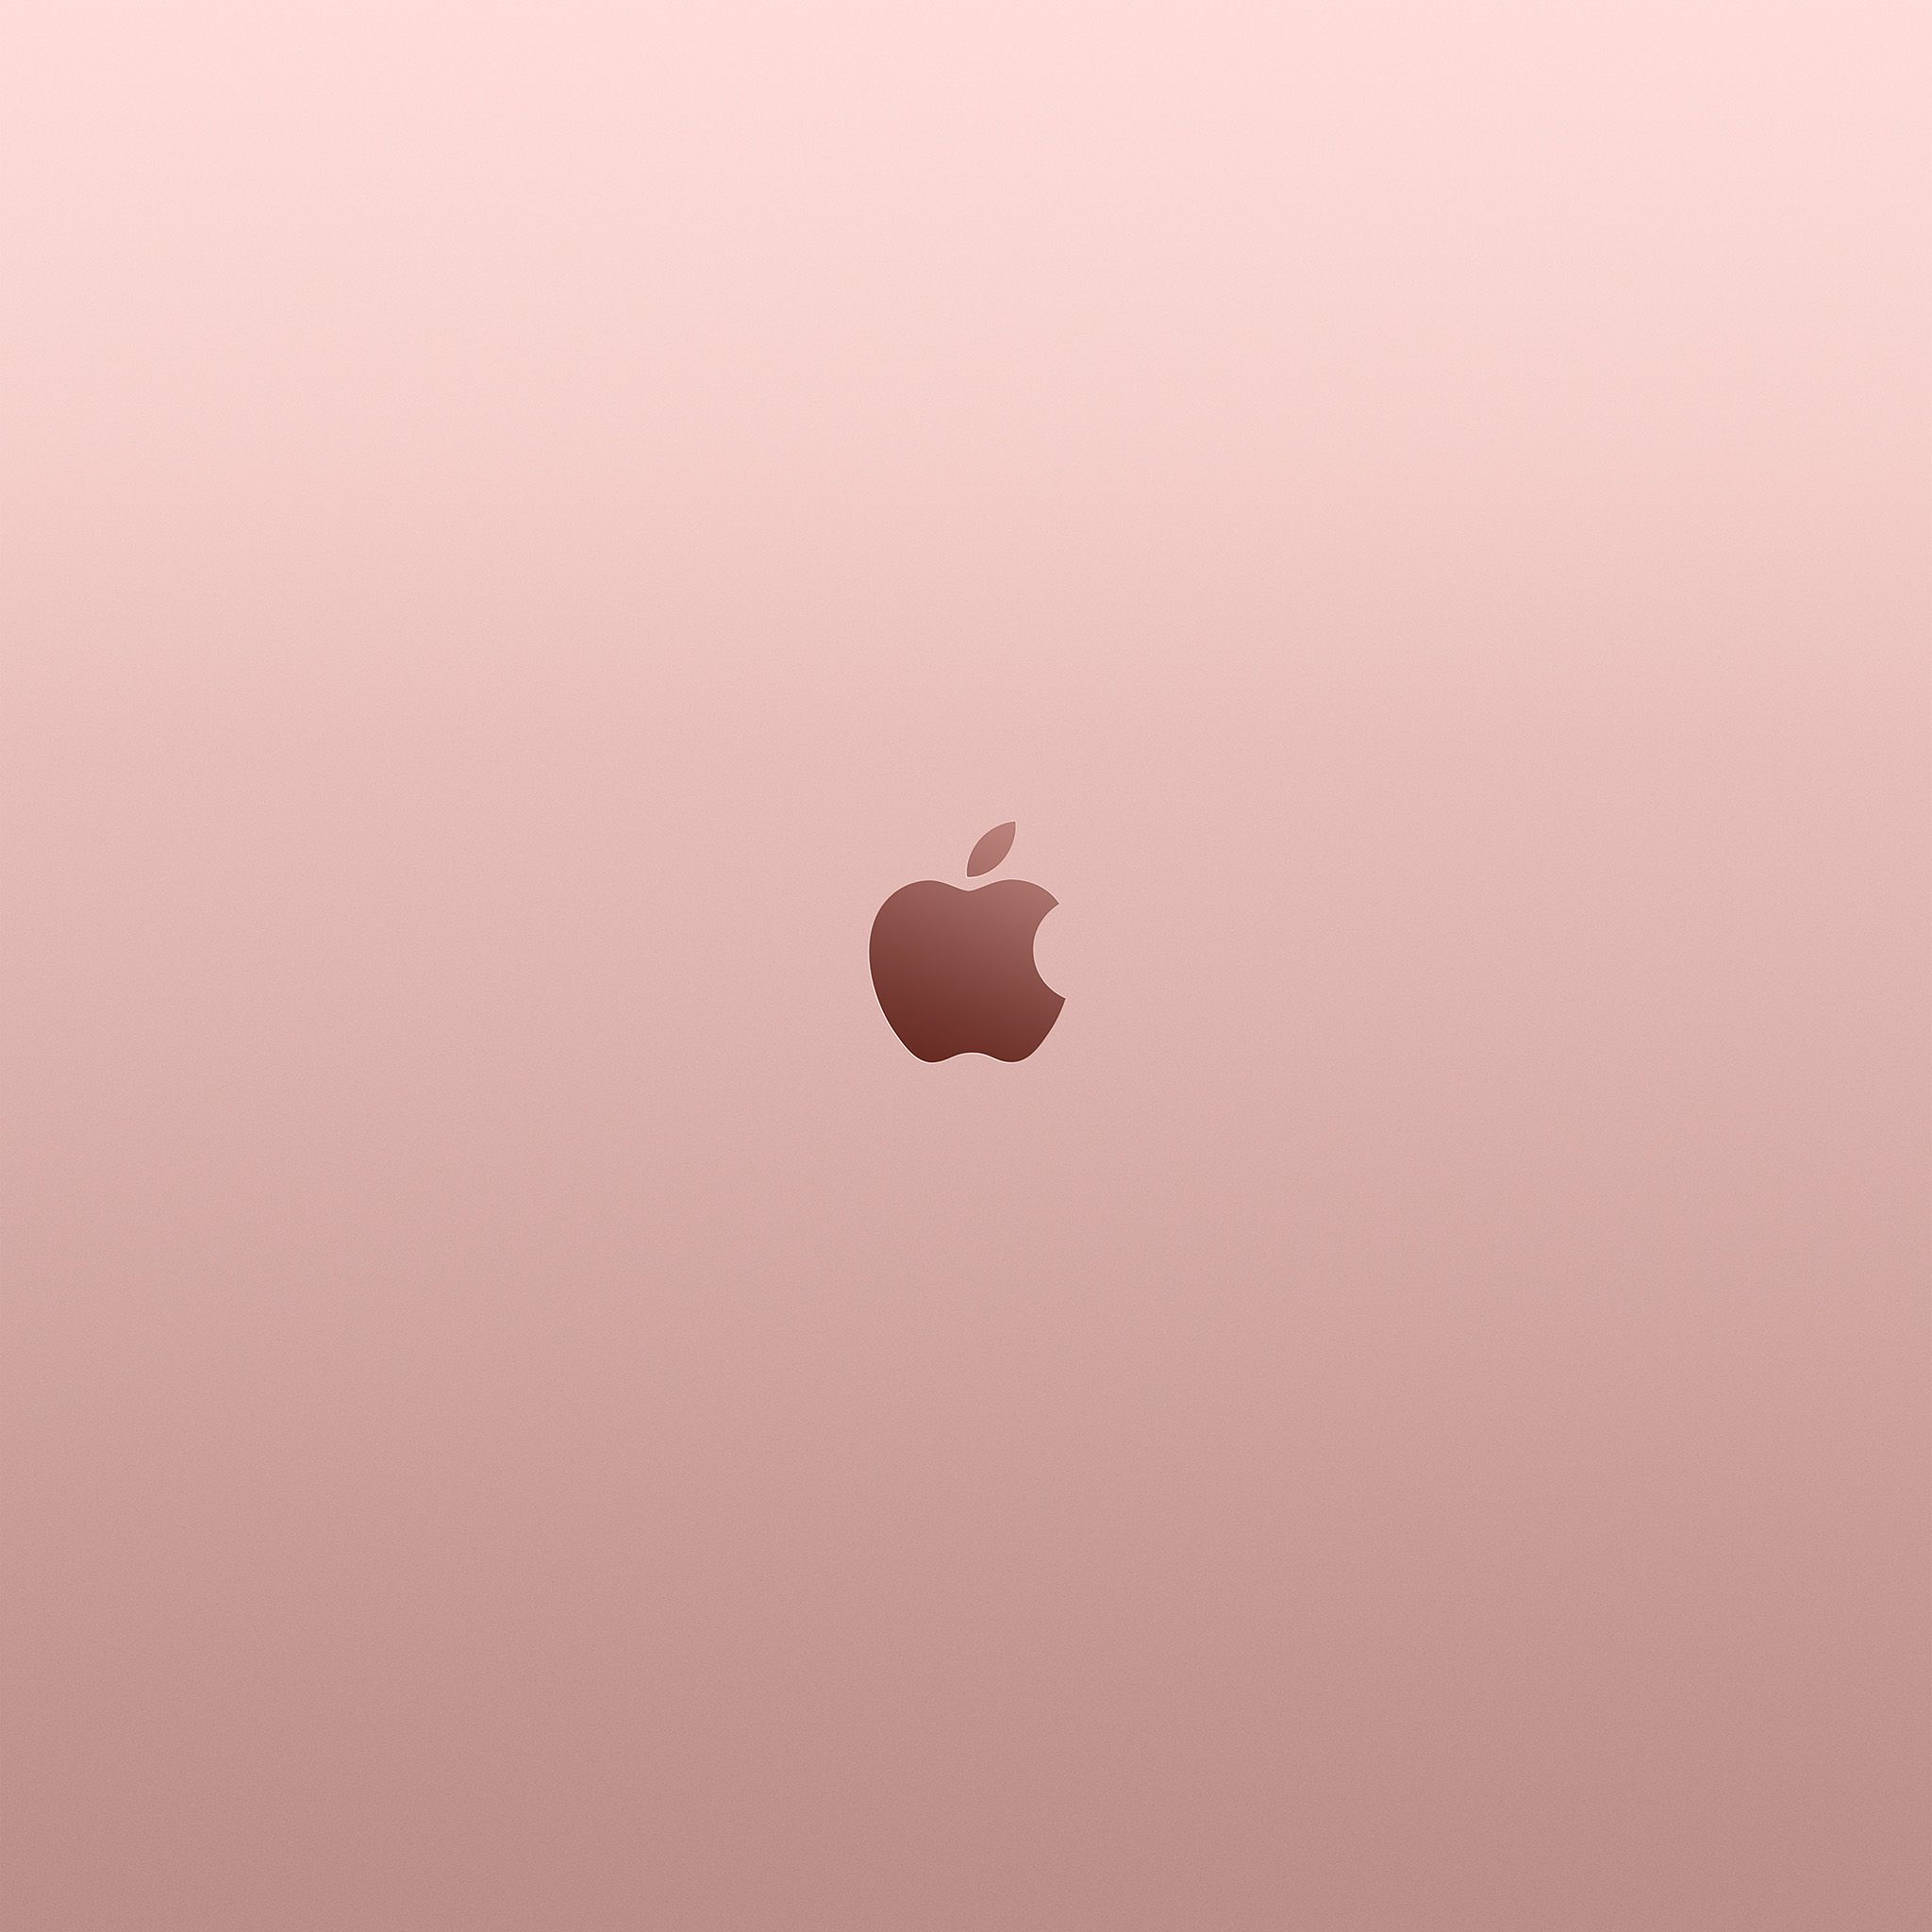 papers.co-au11-apple-pink-rose-gold-minimal-illustration-art-8-wallpaper.jpg 2,048×2,048 pixels